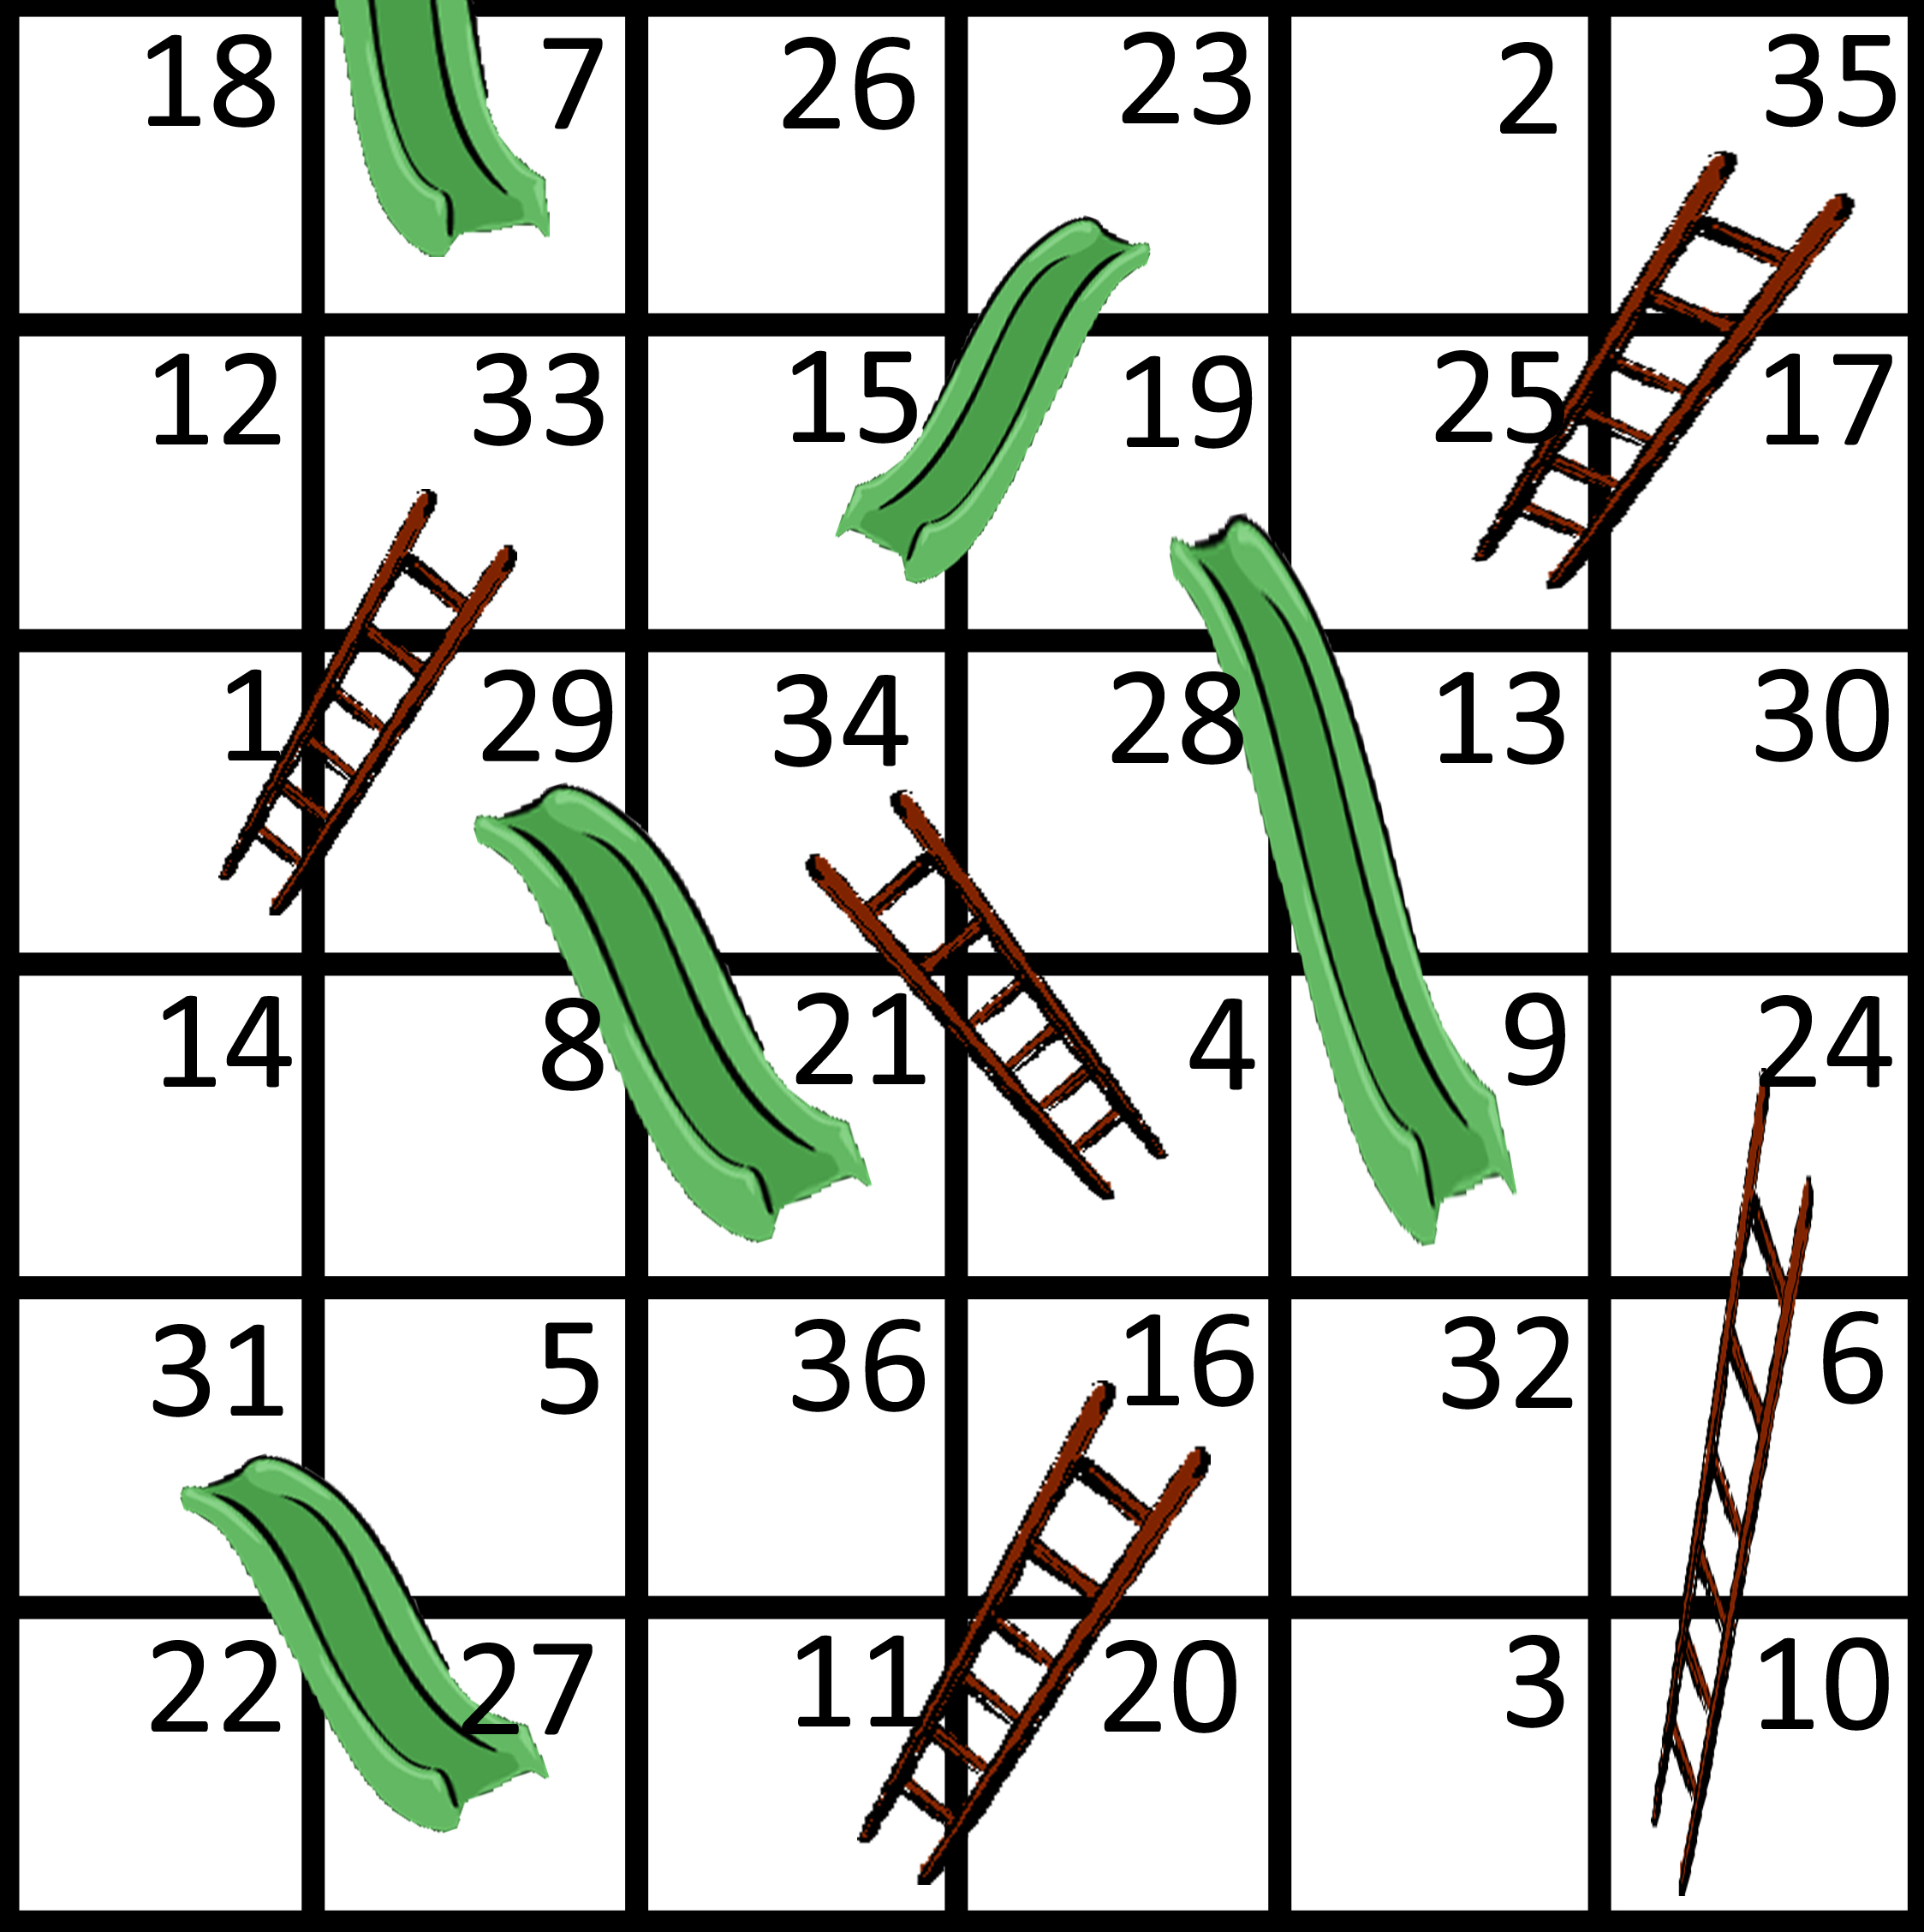 image relating to Chutes and Ladders Board Printable known as chutes and ladders recreation board 2019